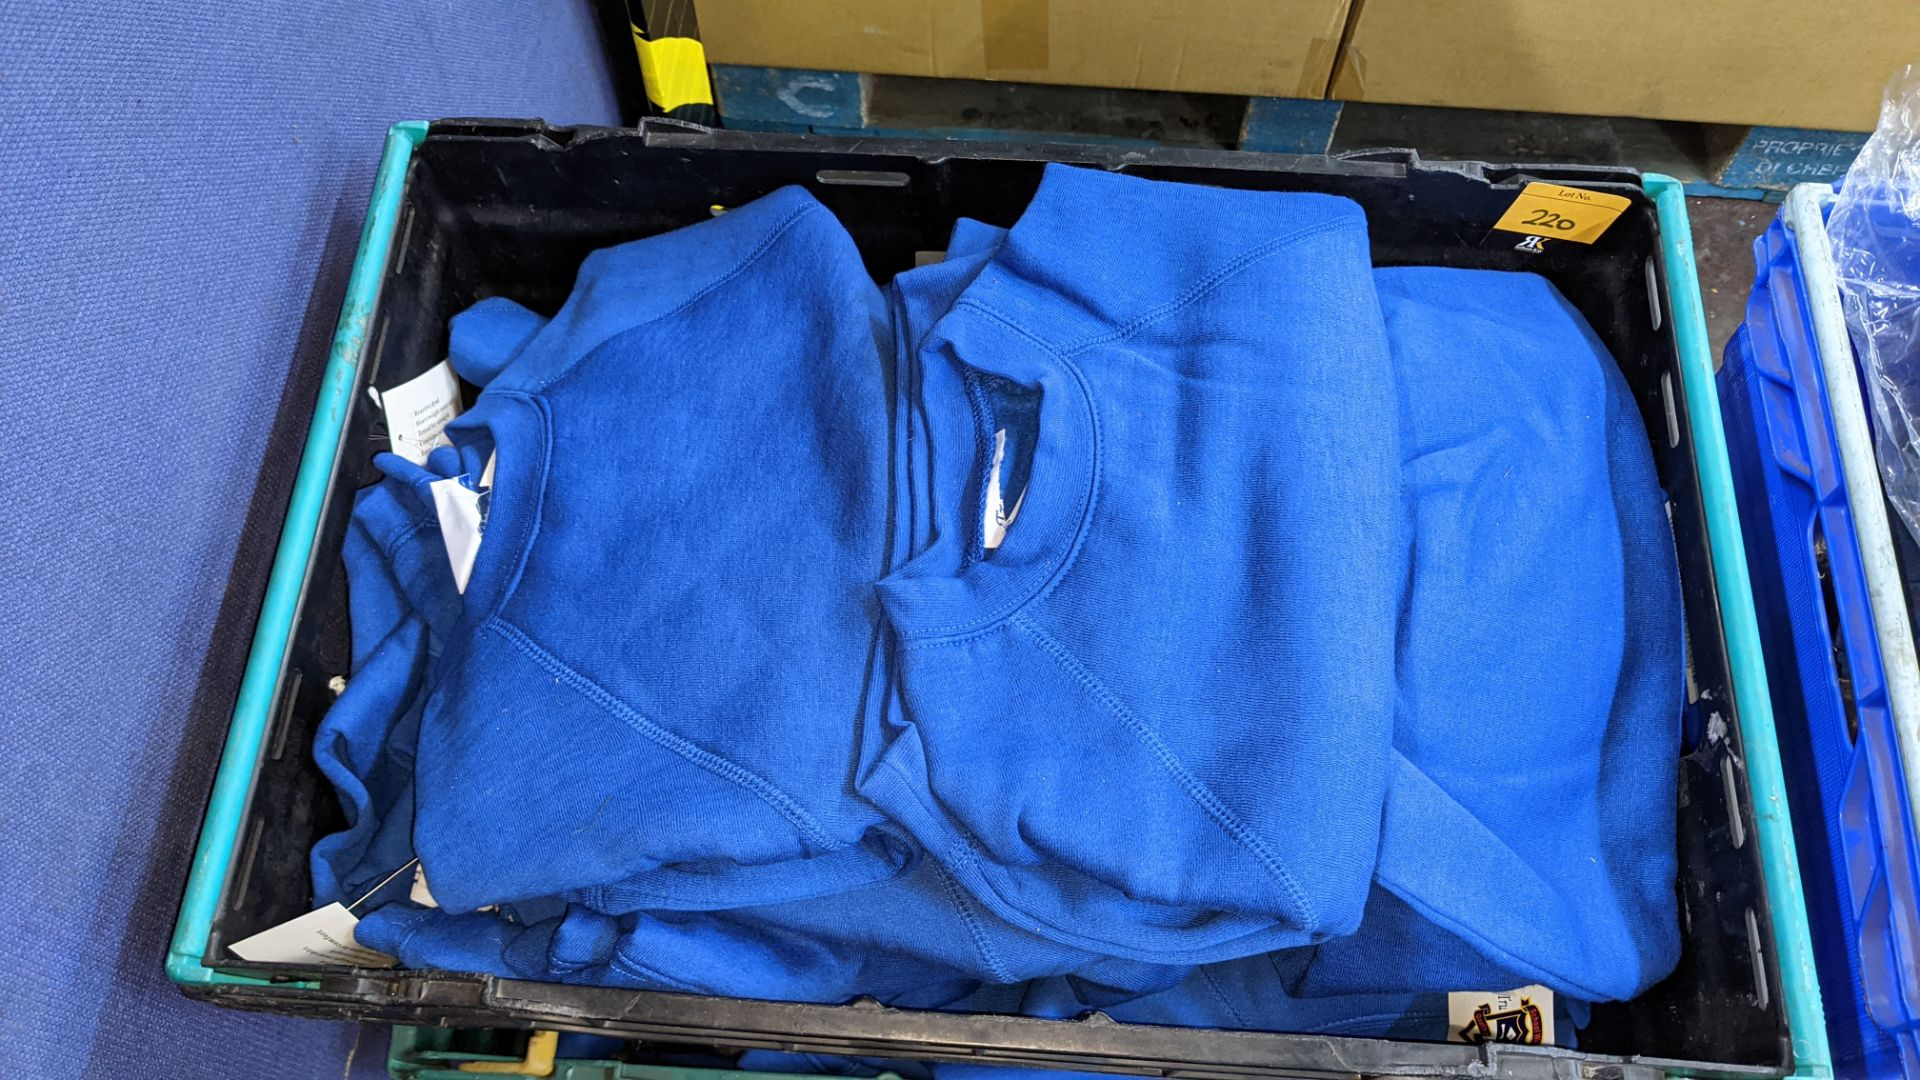 Approx 58 off children's blue sweatshirts - the contents of 3 crates. NB crates excluded - Image 3 of 6